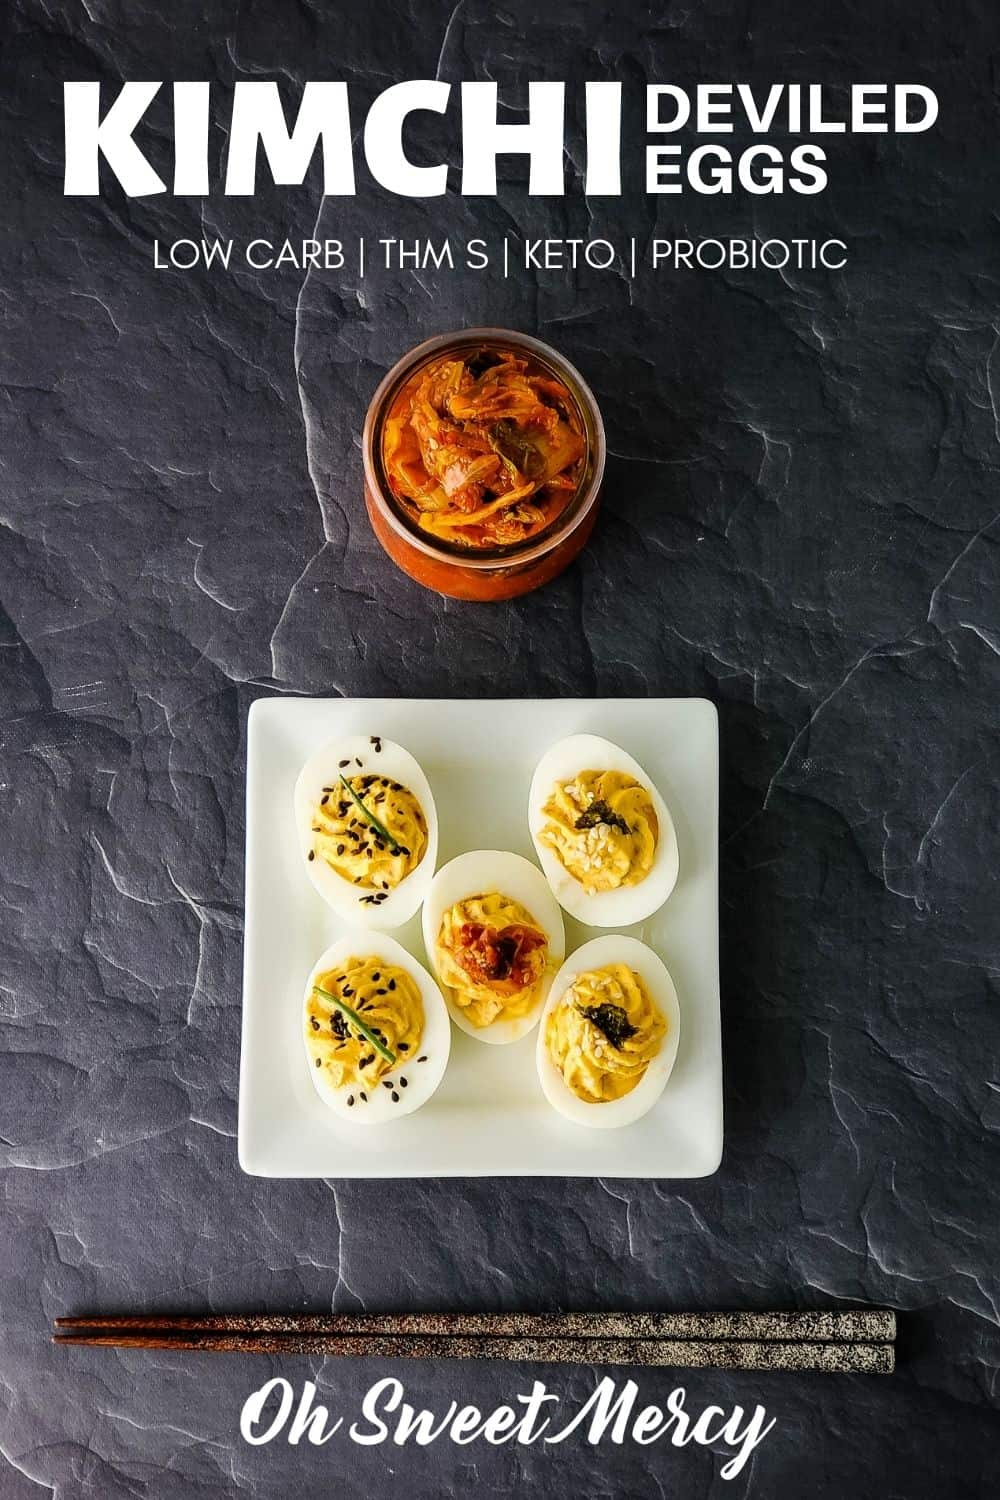 This simple but delicious kimchi deviled egg recipe is a great way to spice up your deviled eggs! Make them mild or spicy, either way you get probiotic goodness in every bite. Makes a tasty THM S appetizer, snack, or a quick protein source for any meal. #thm #lowcarb #keto #eggs #kimchi #probiotic @ohsweetmercy